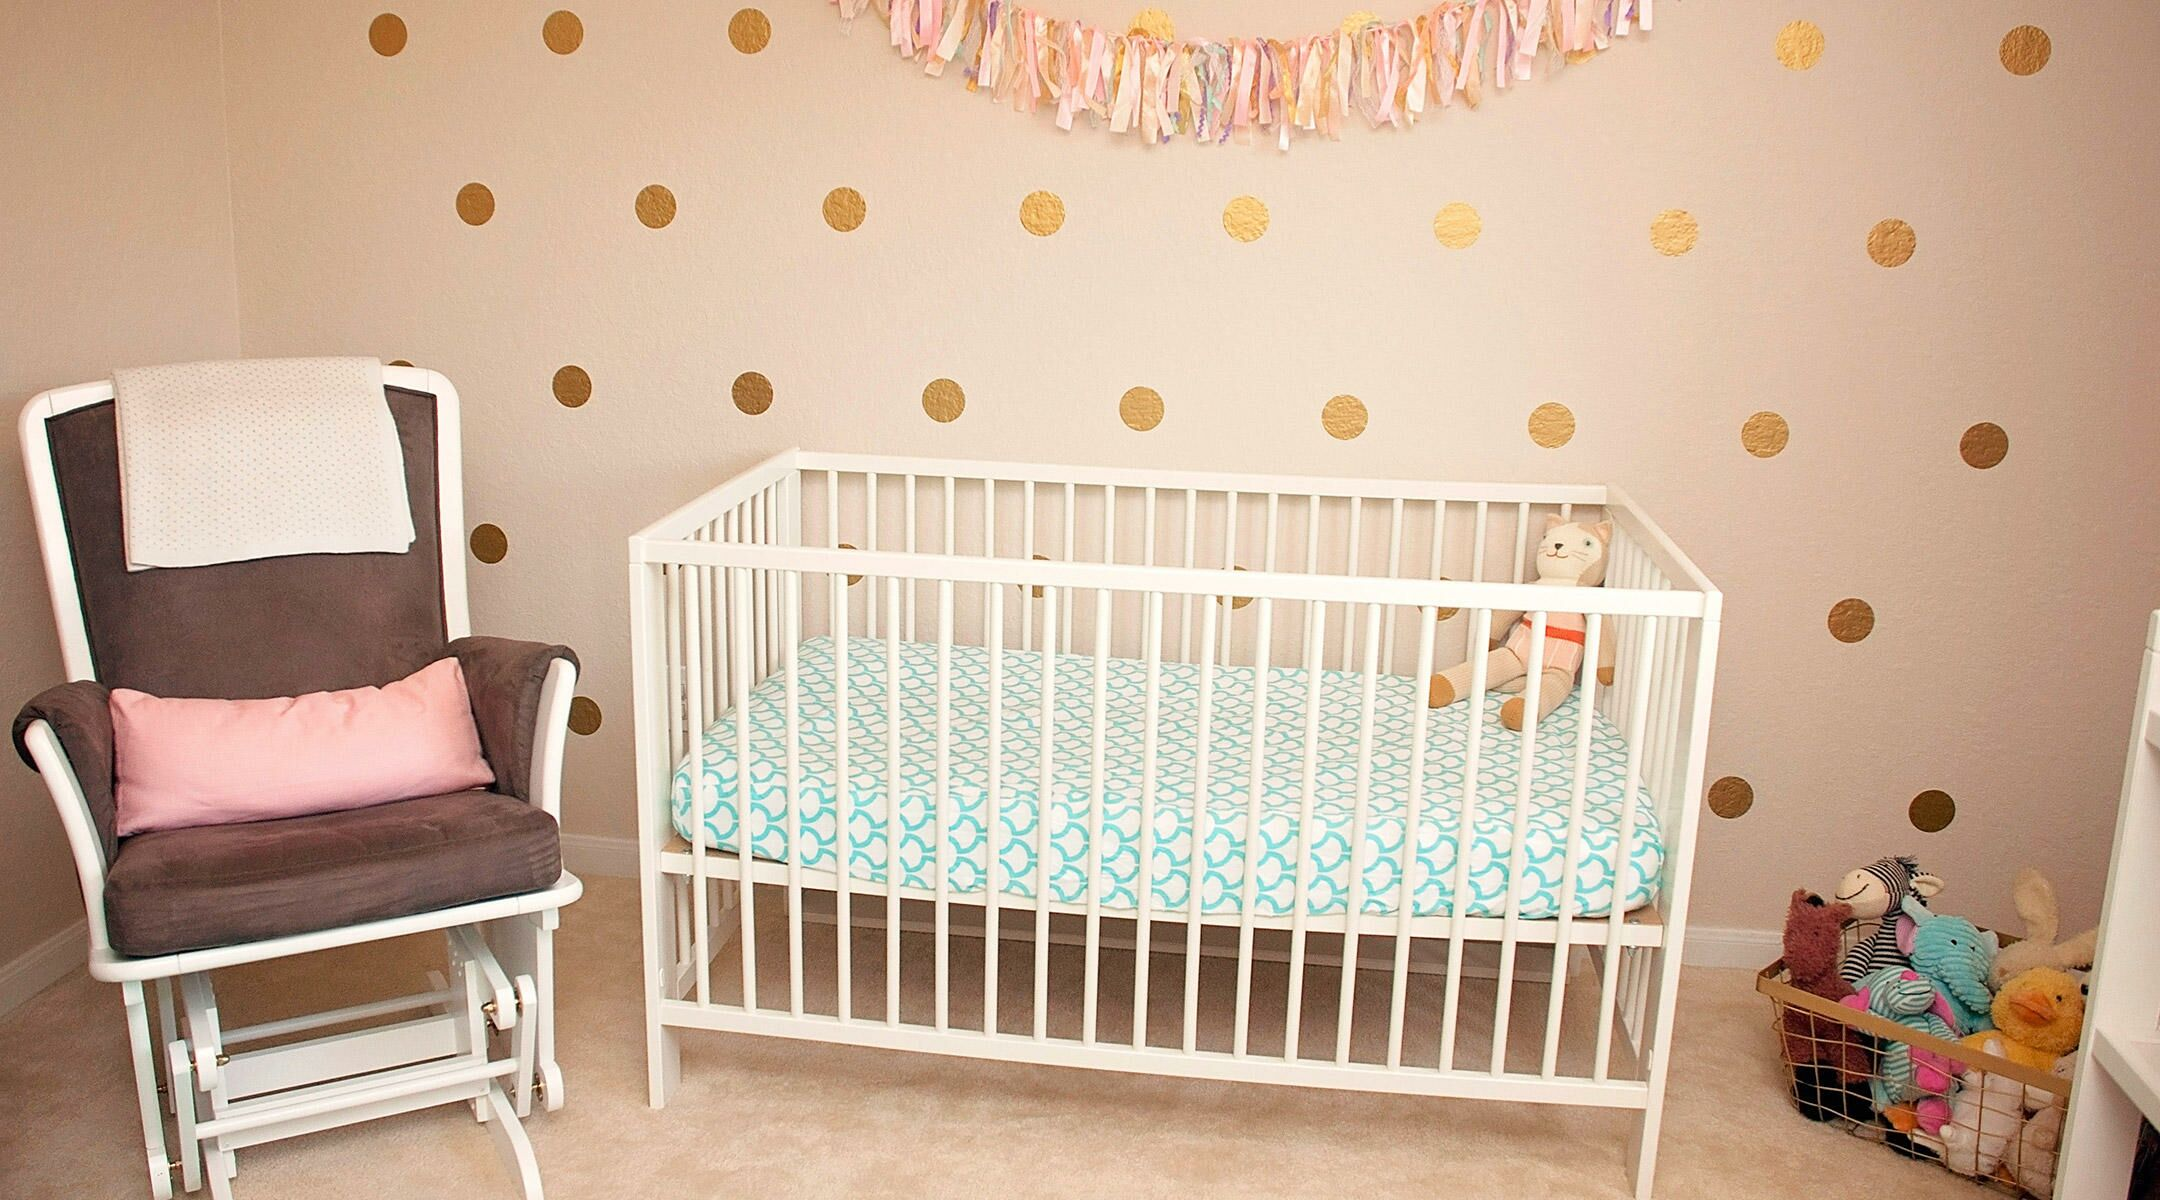 nursery ideas Baby Room Ideas